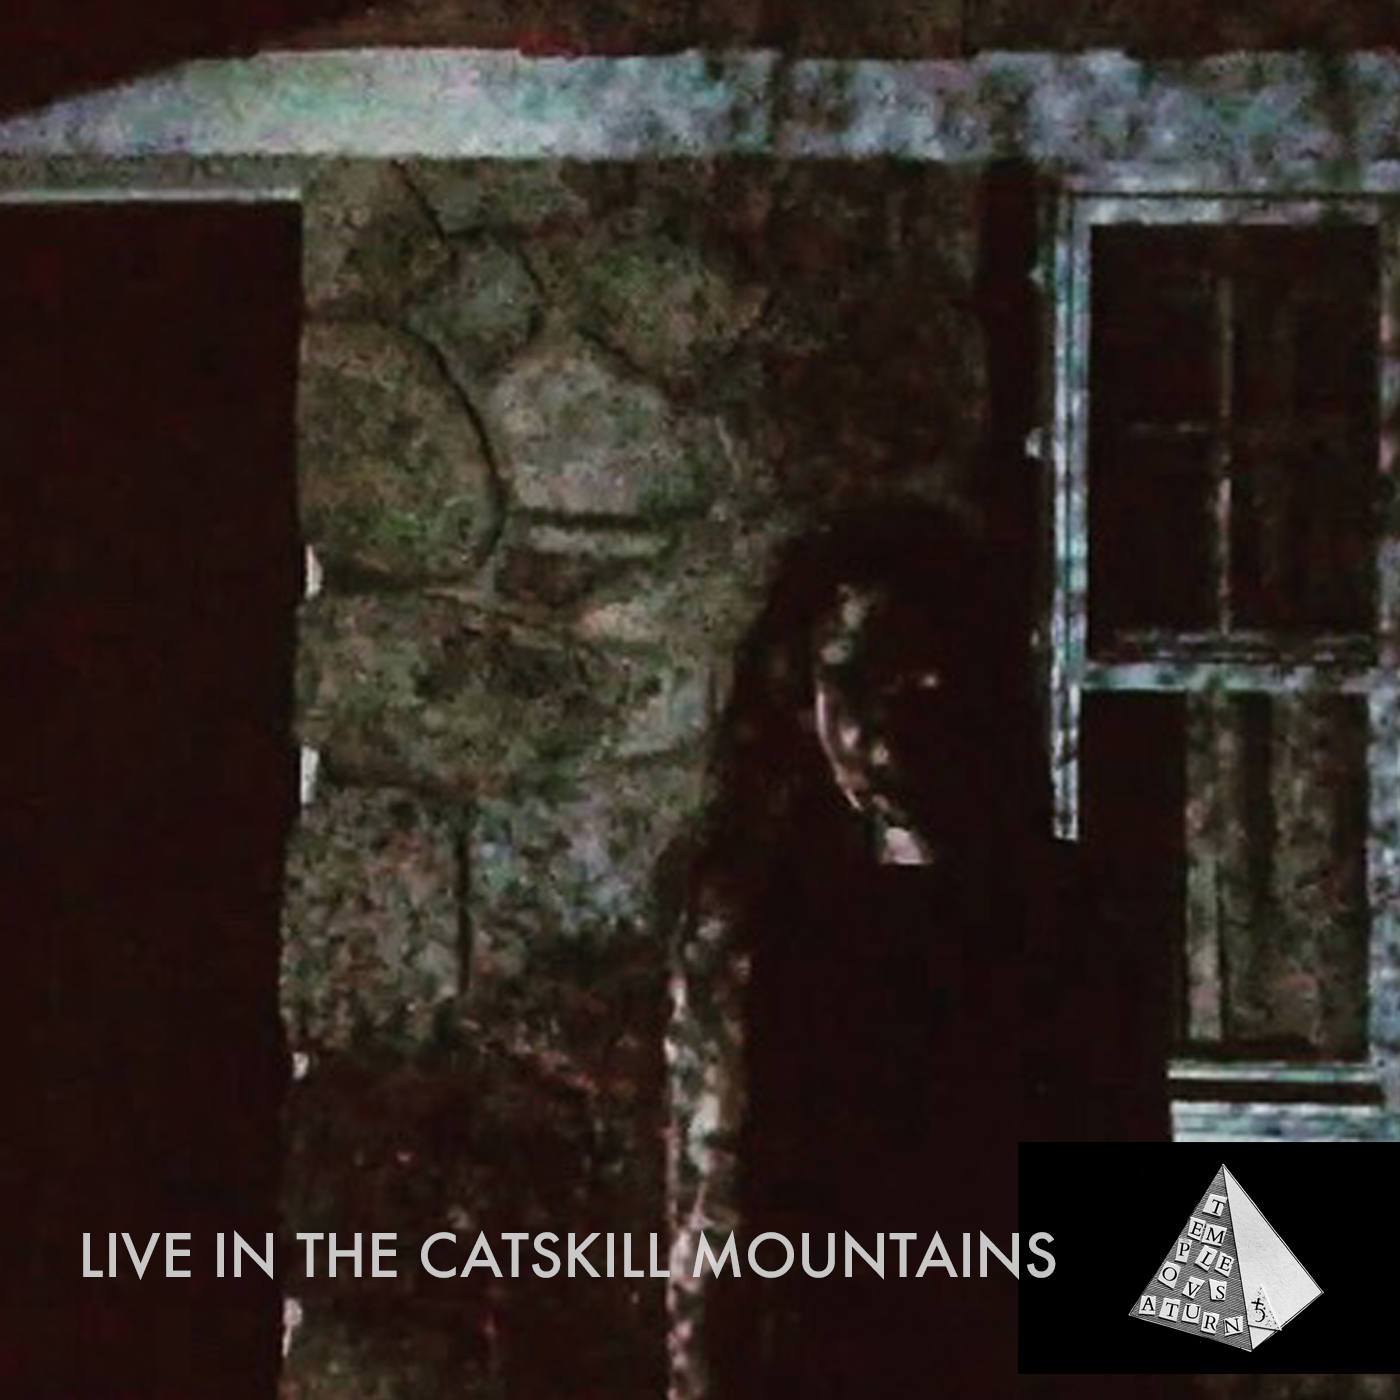 LIVE In The Catskill Mountains by Temple ov Saturn